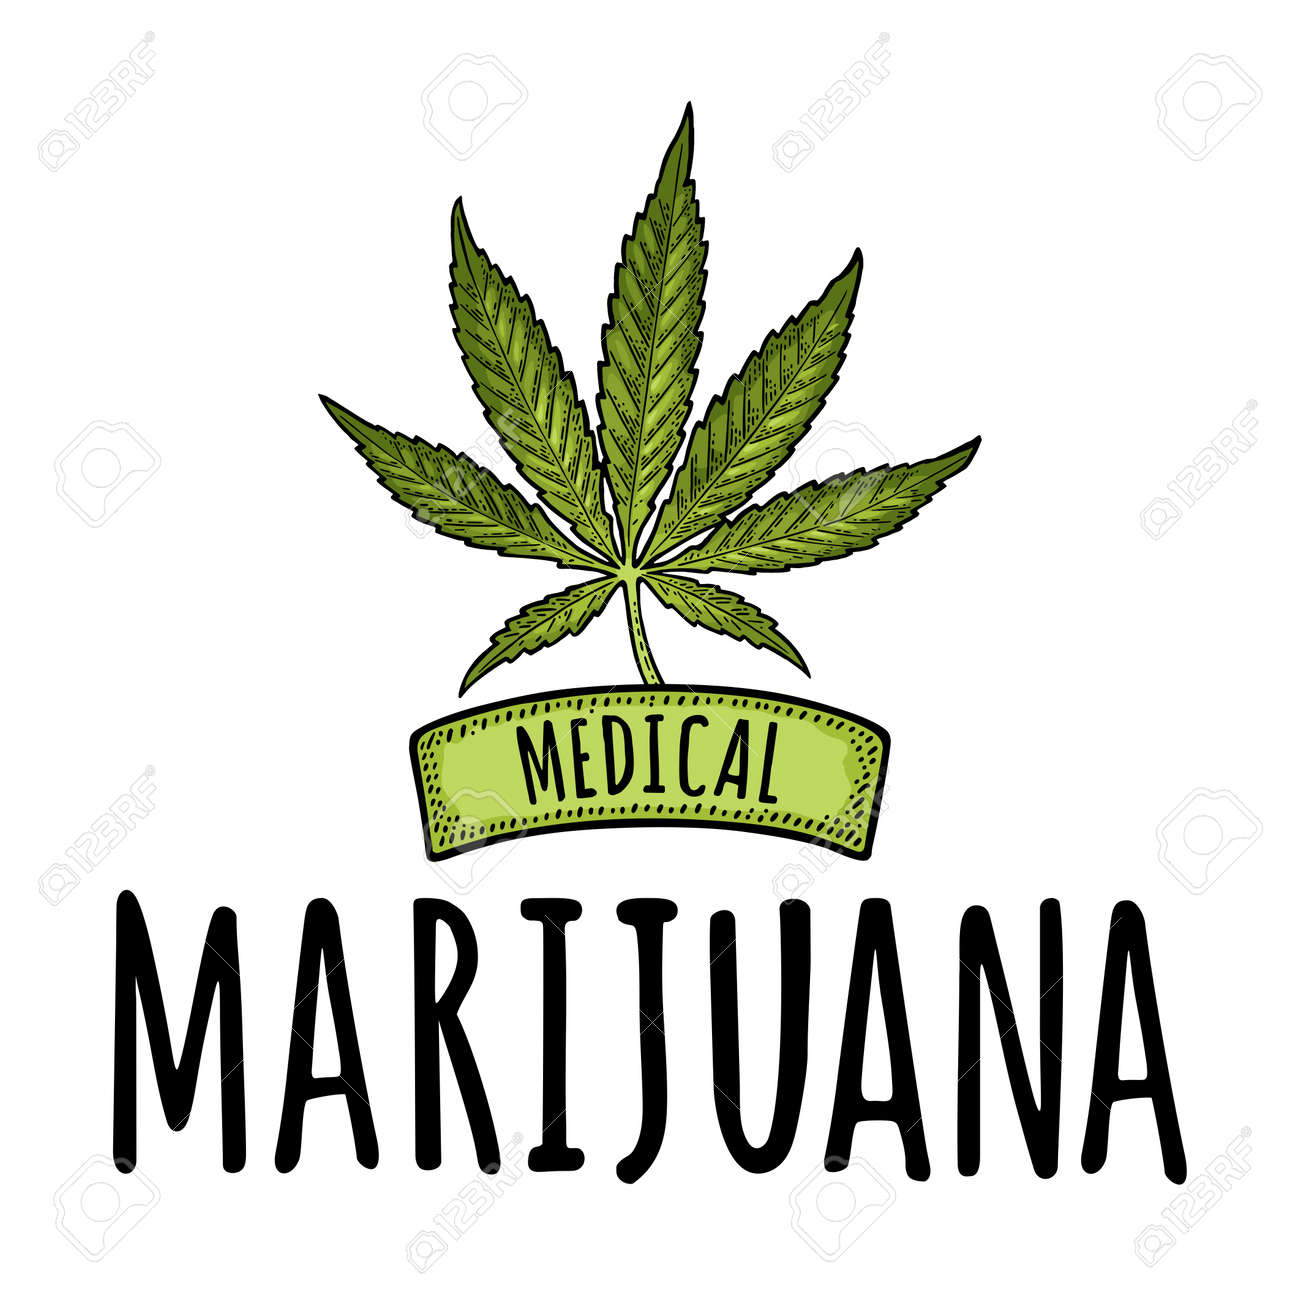 Cannabis leaf isolated on white background. Vintage color vector engraving illustration for label, poster, web. Medical marijuana handwriting lettering. - 149691624